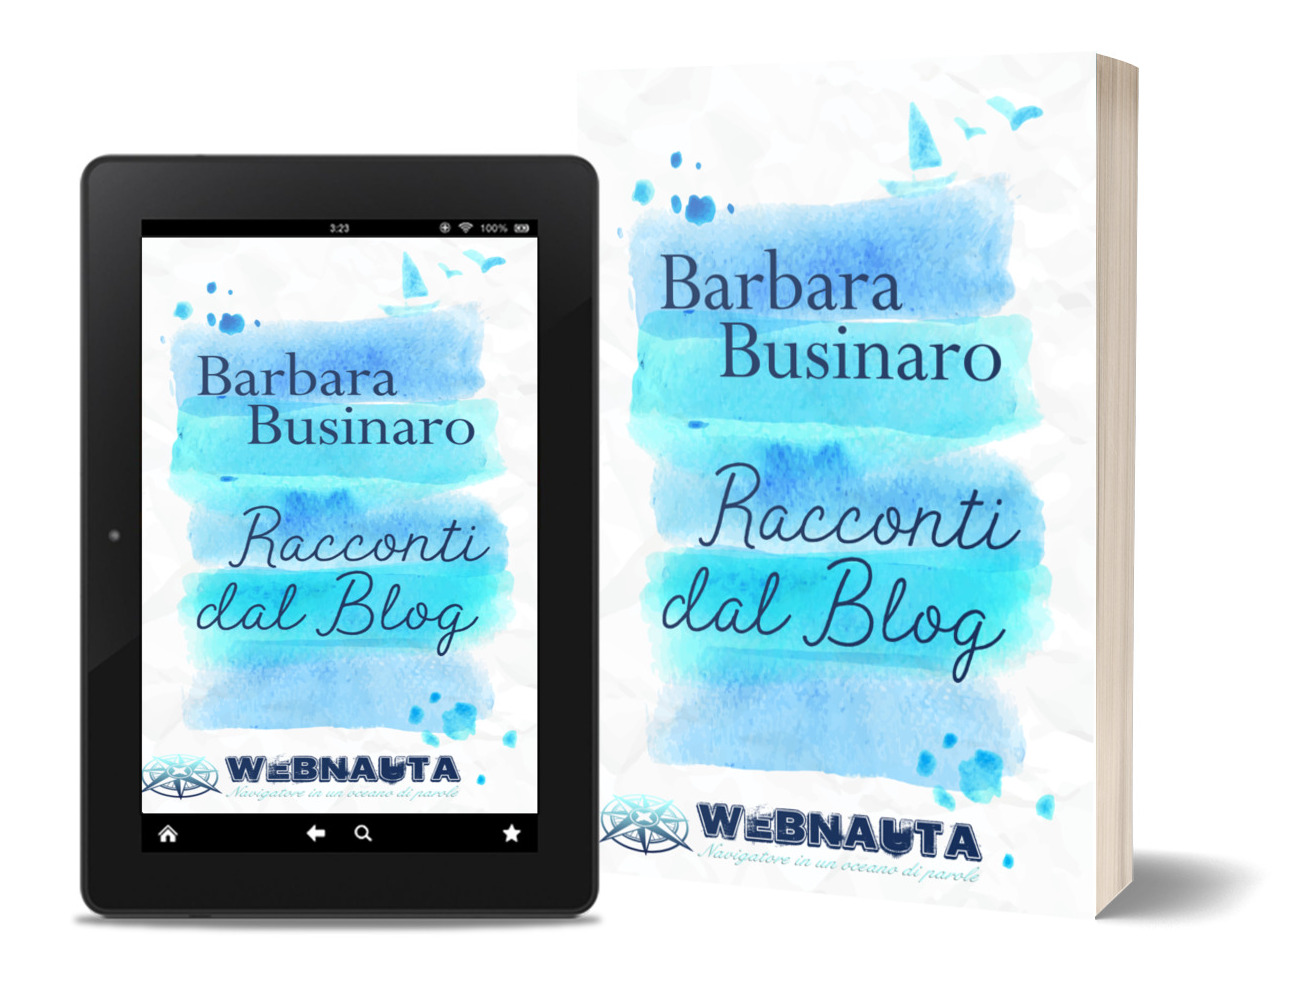 Barbara Businaro - Racconti dal blog - Iscriviti alla newsletter per averla gratis